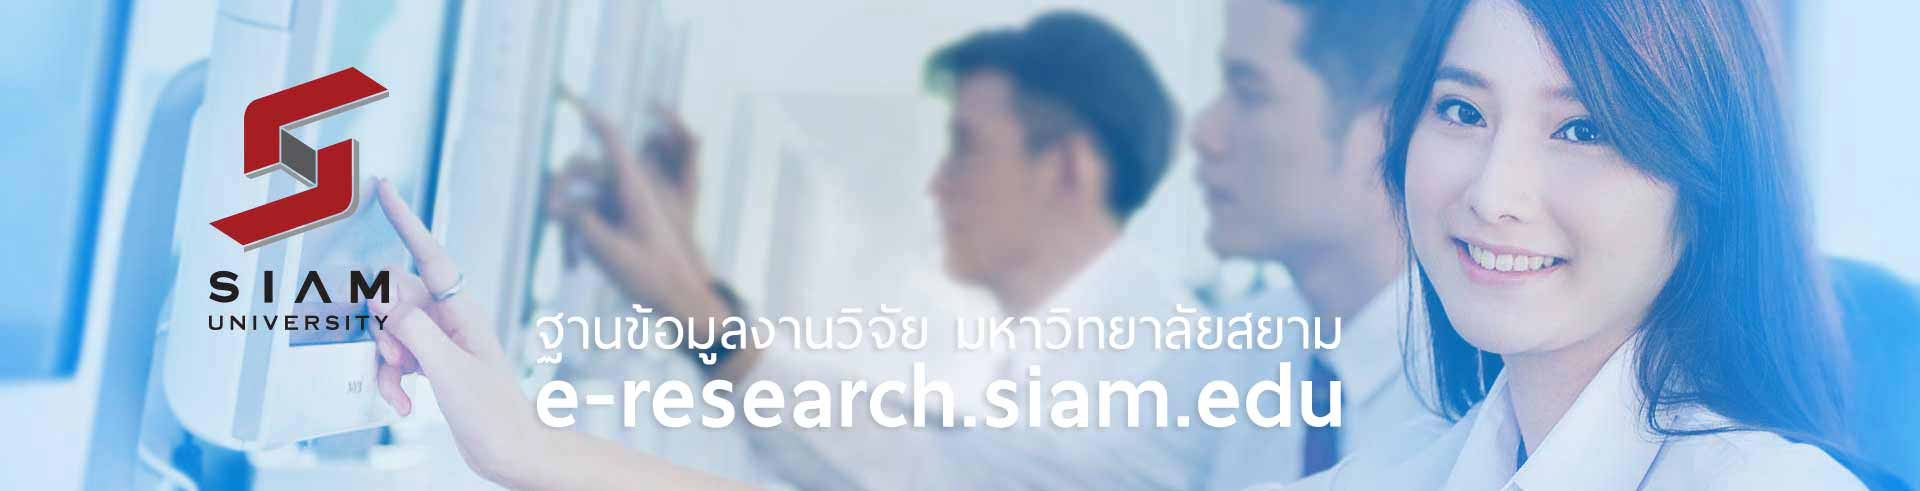 Research on the Construction and Management of Echelon Talent in Growing Enterprises—Case Study on Mai Leite Nc Technology Limited Company - ฐานข้อมูลงานวิจัย มหาวิทยาลัยสยาม